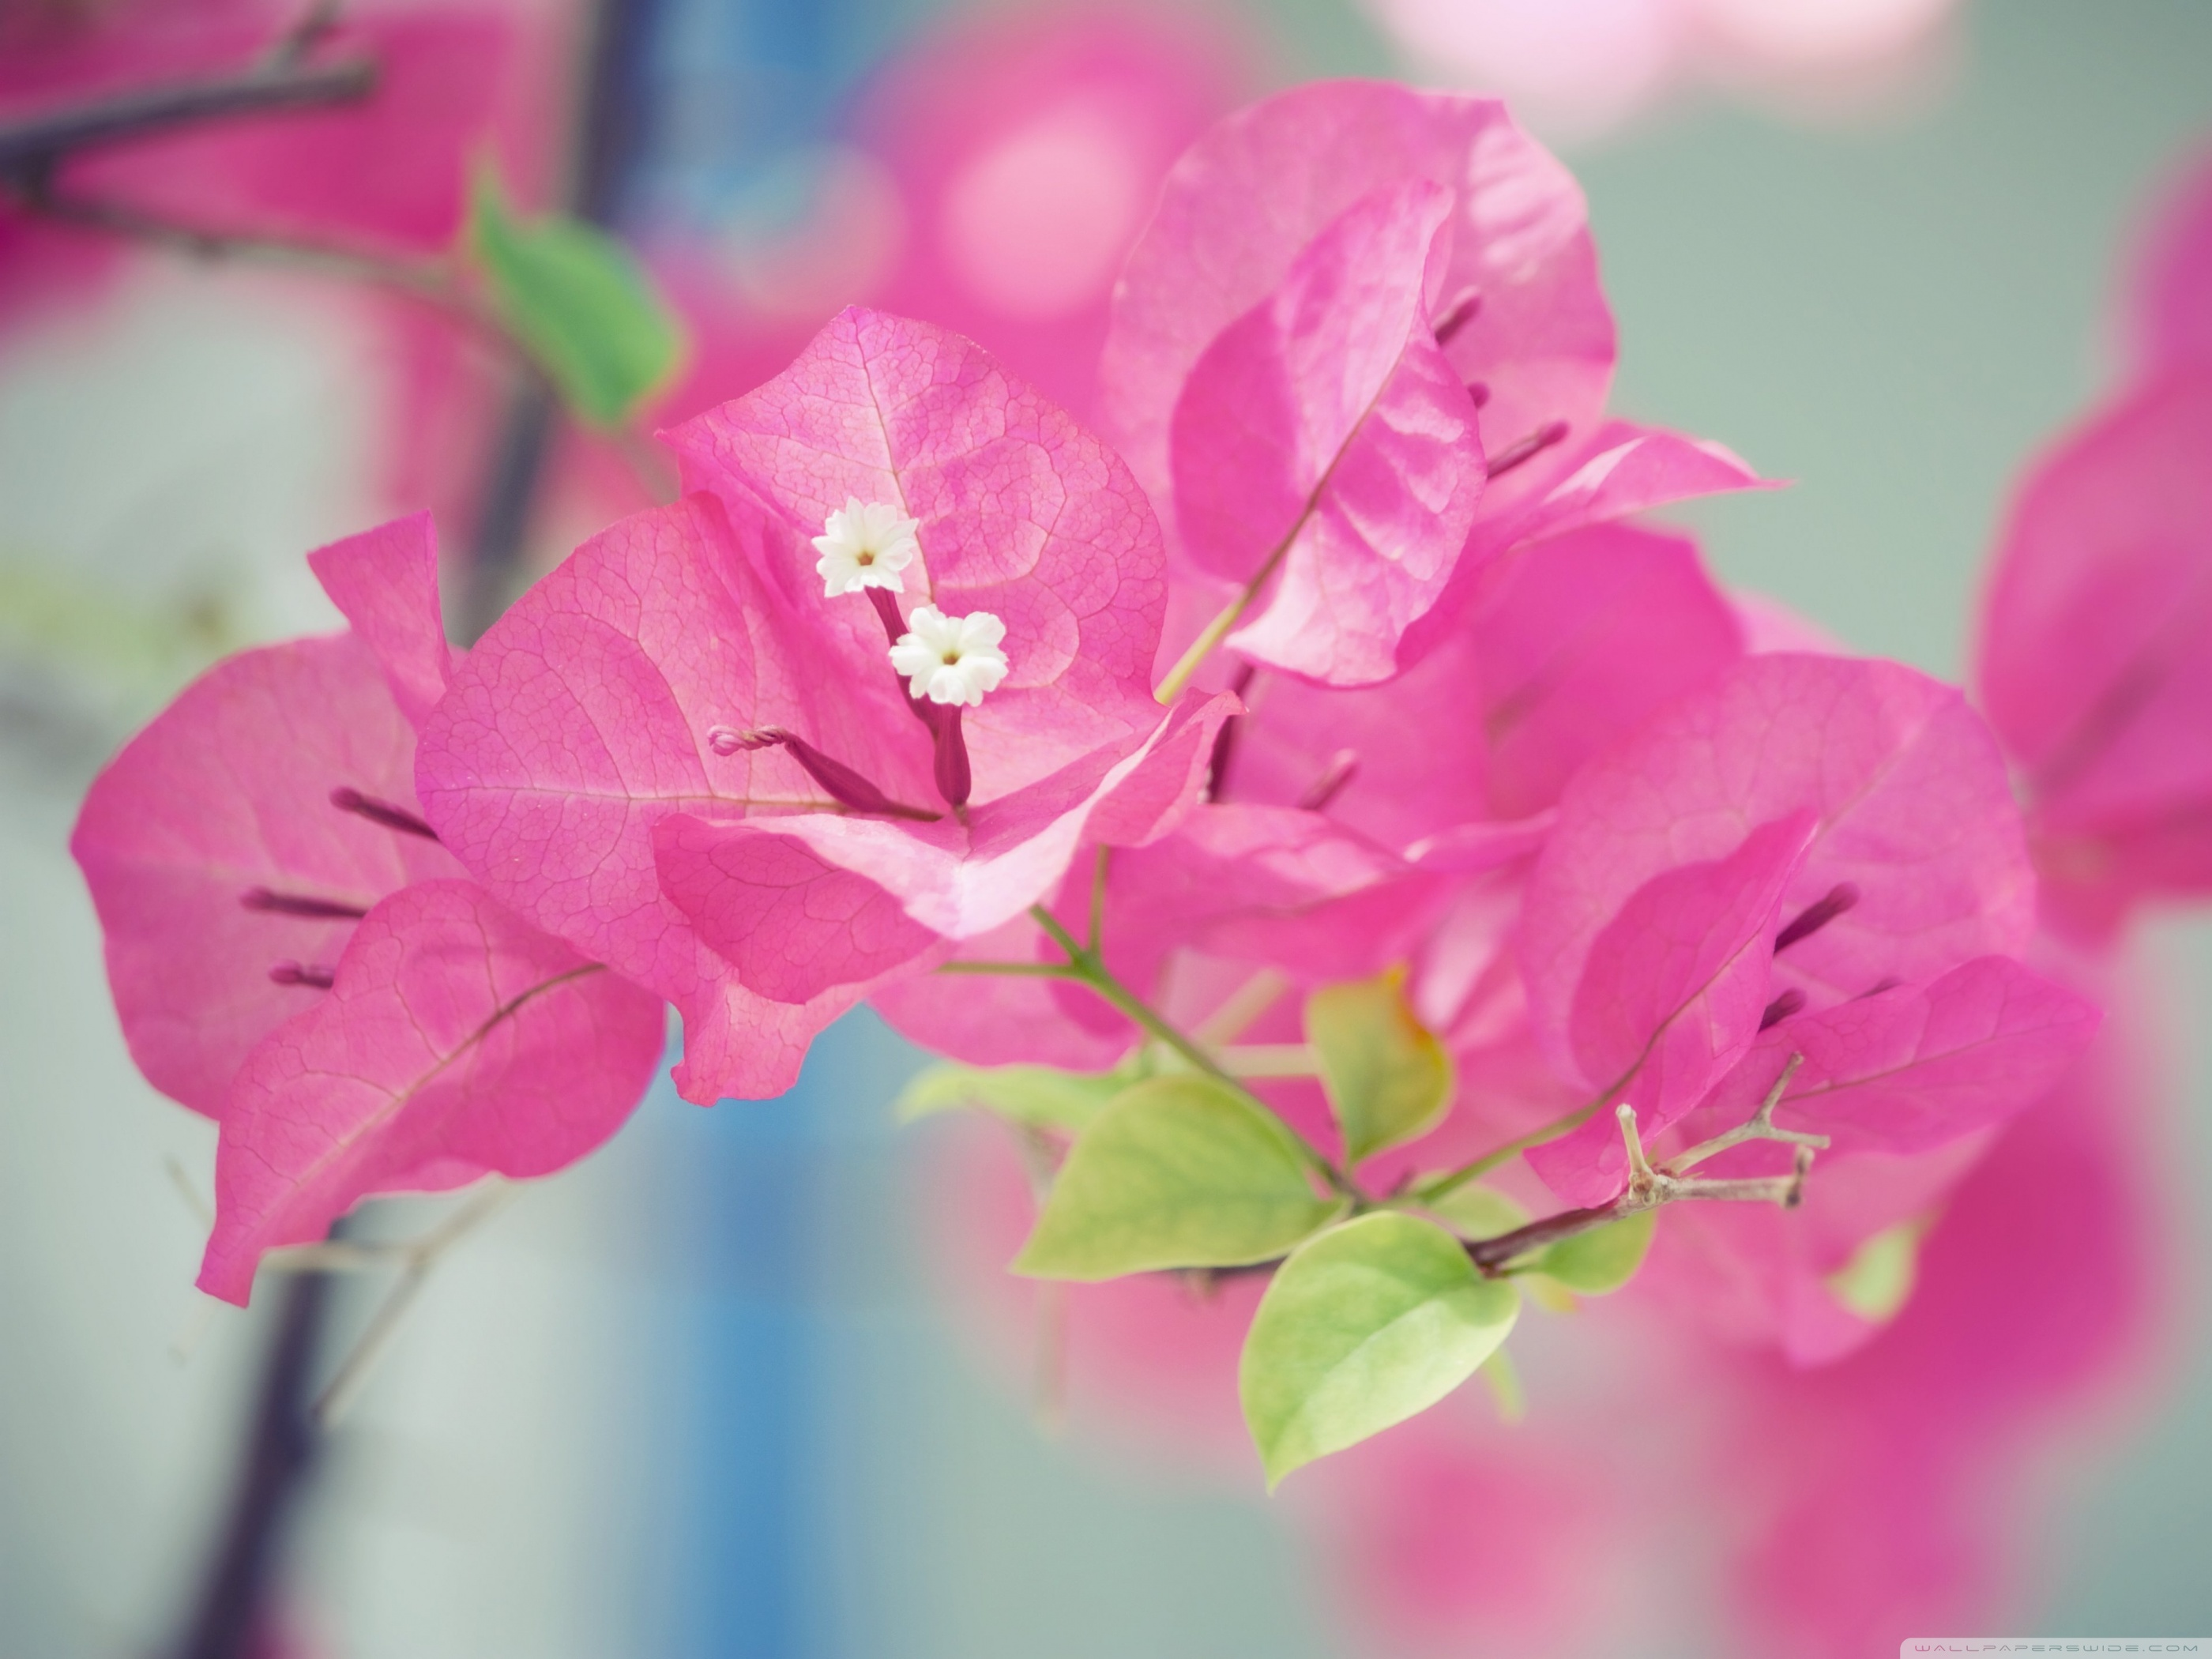 Bougainvillea Wallpaper Bougainvillea Macro 4k Hd Desktop Wallpaper For 4k Ultra Hd Tv